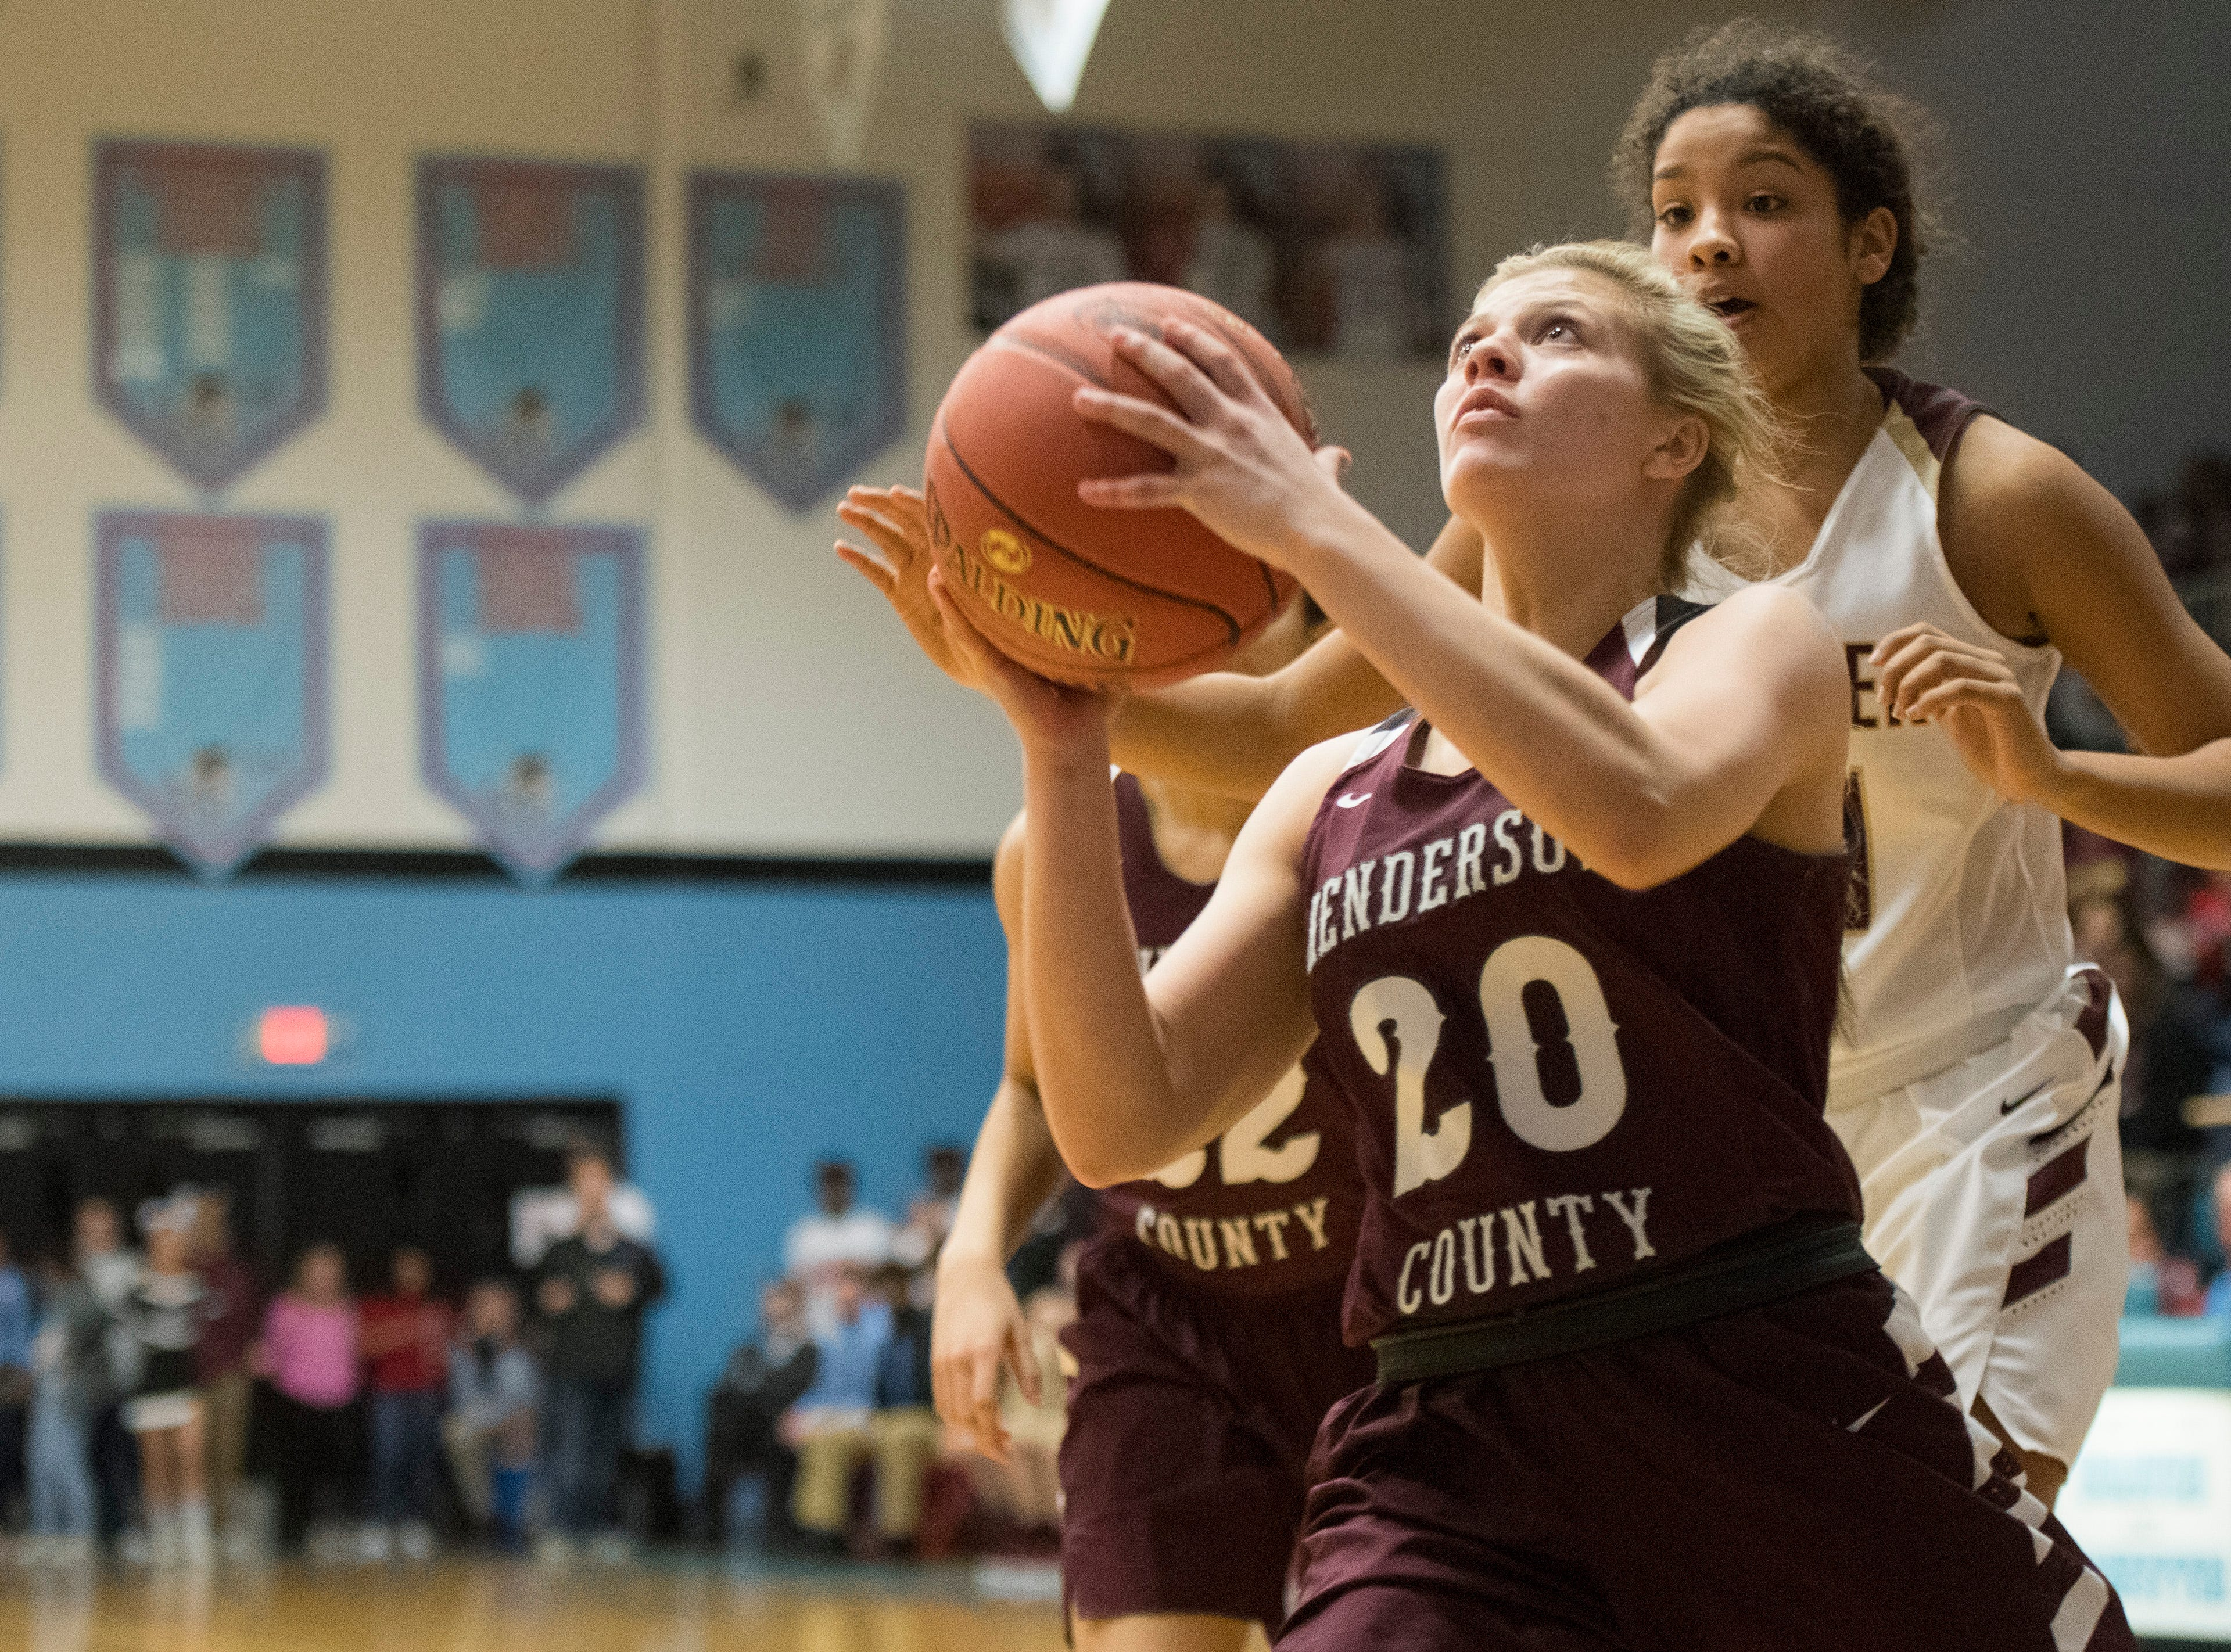 Henderson County's Kaytlan Kemp (20) shots a layup during the 2019 Sixth District championship game against the Webster County Lady Trojans at Union County High School Thursday, Feb. 21, 2019.